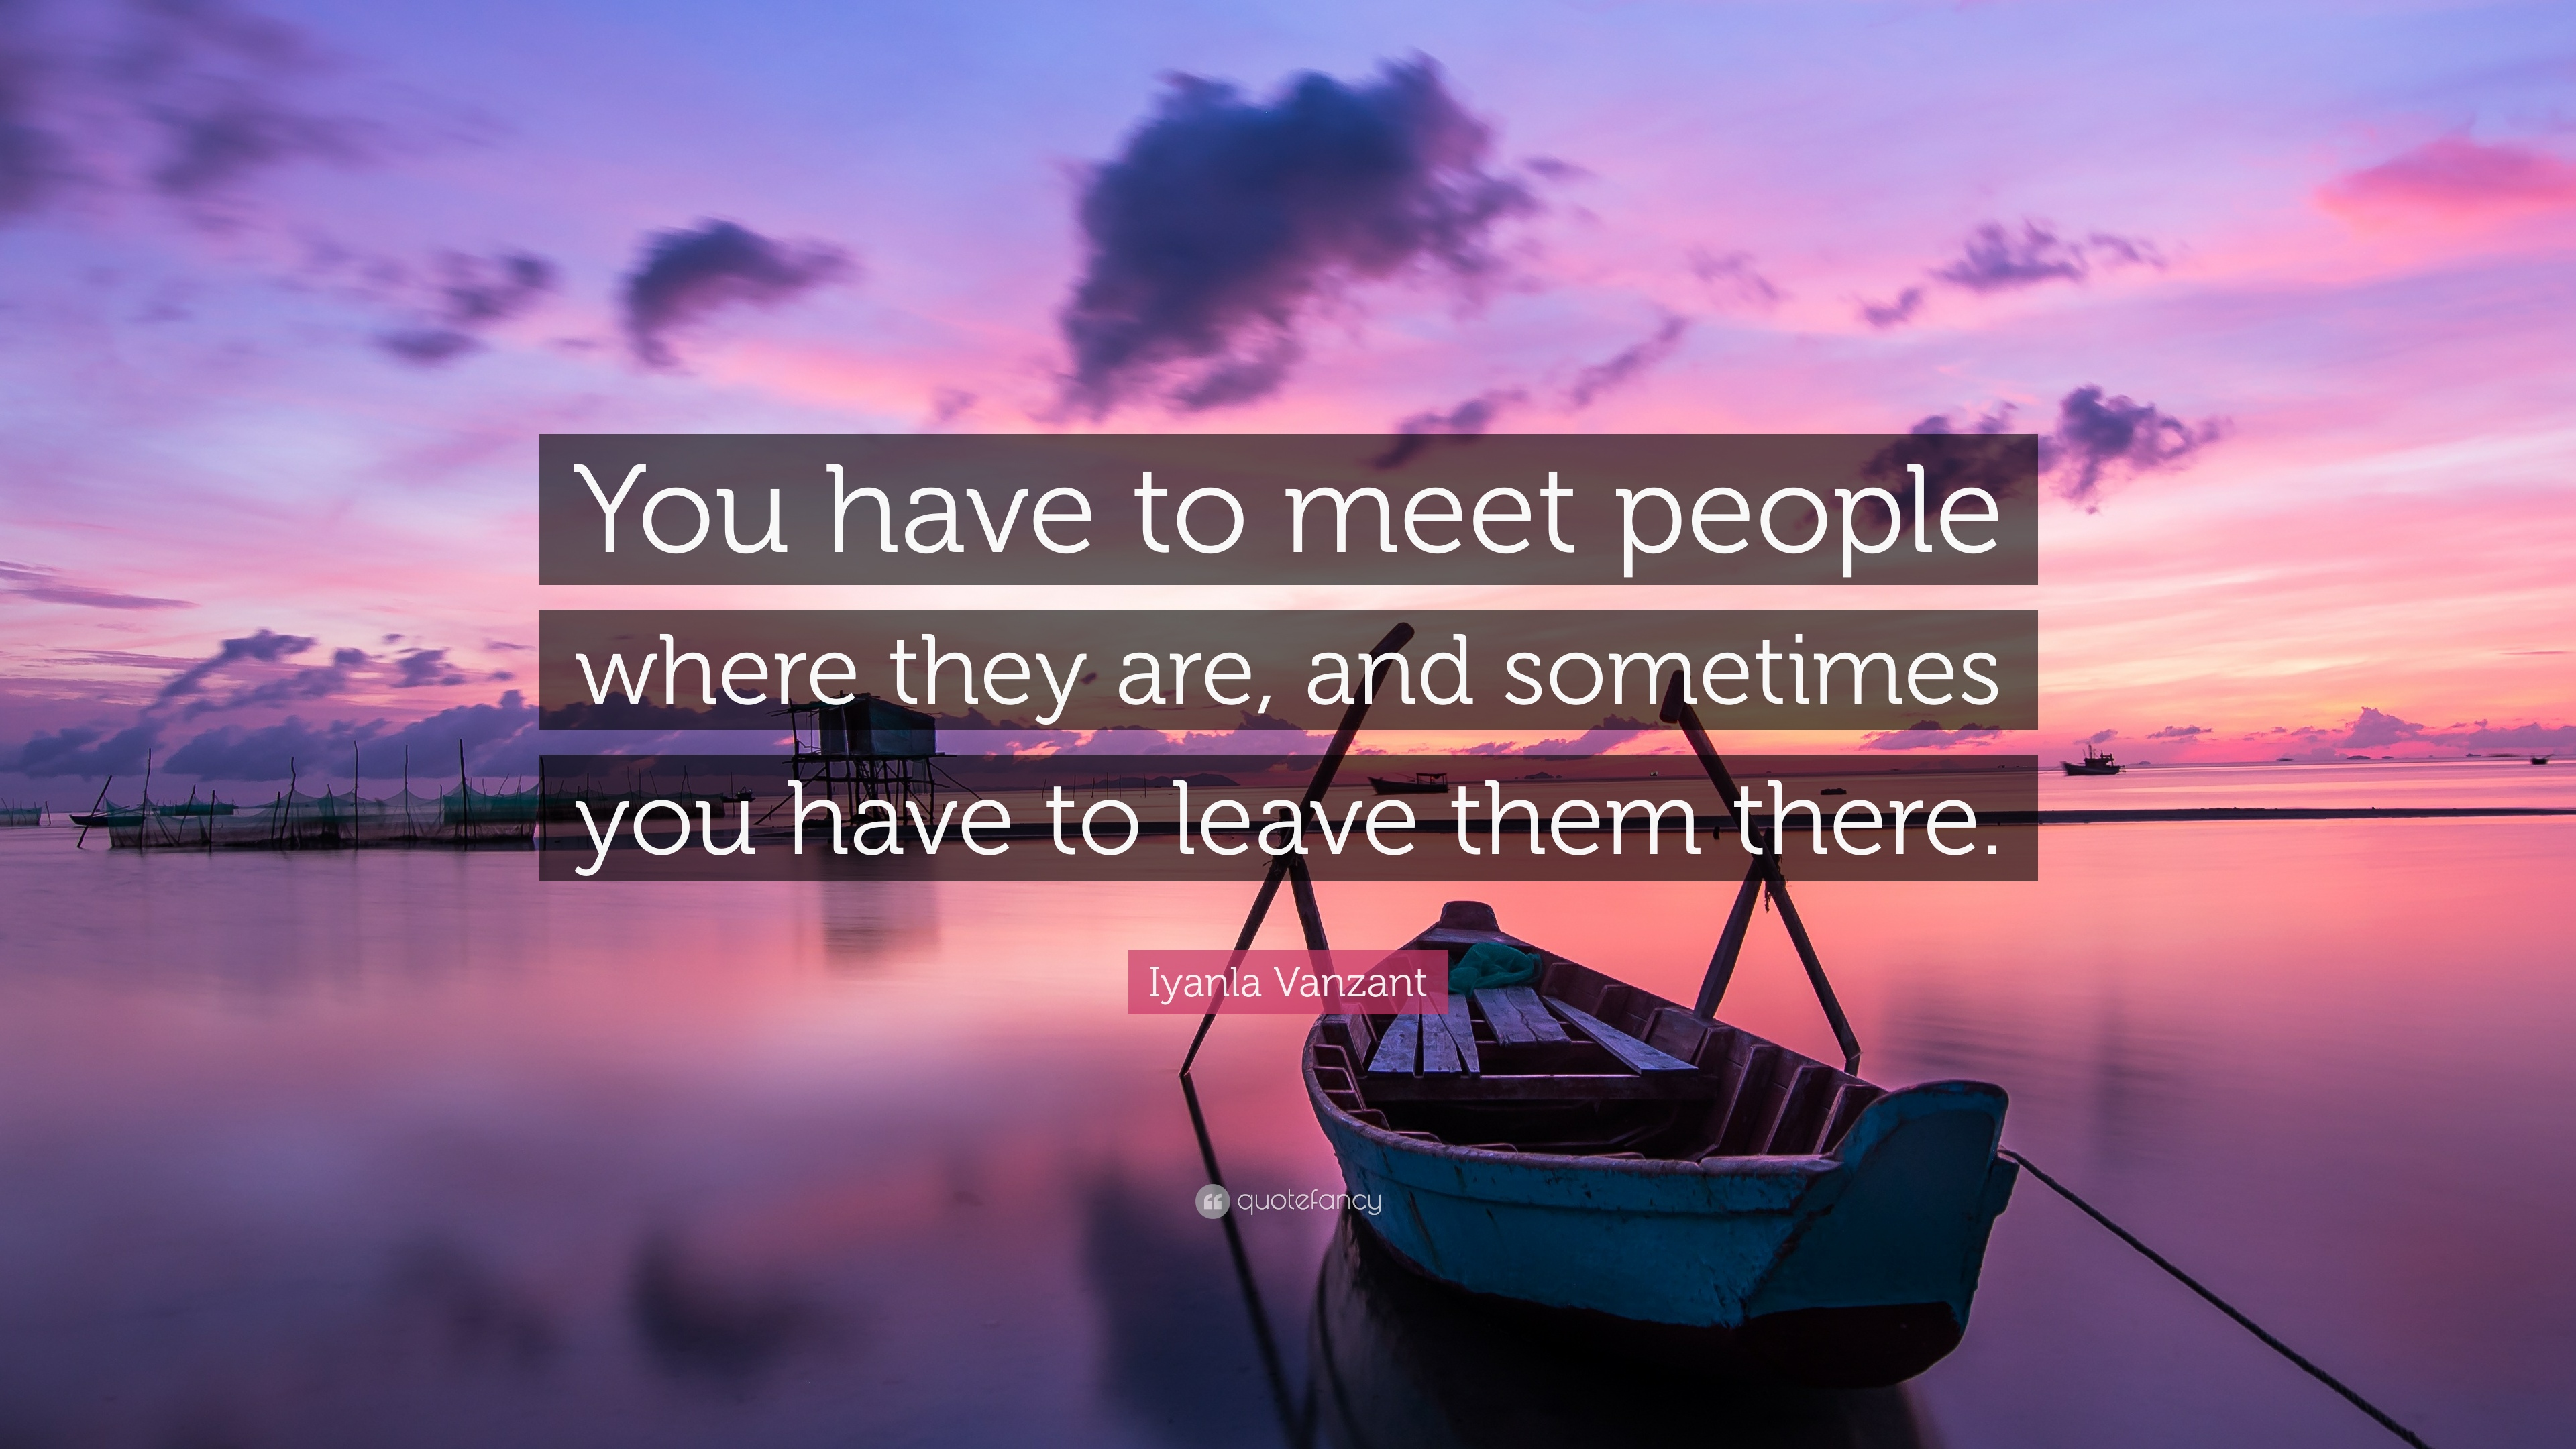 Where to meet good people